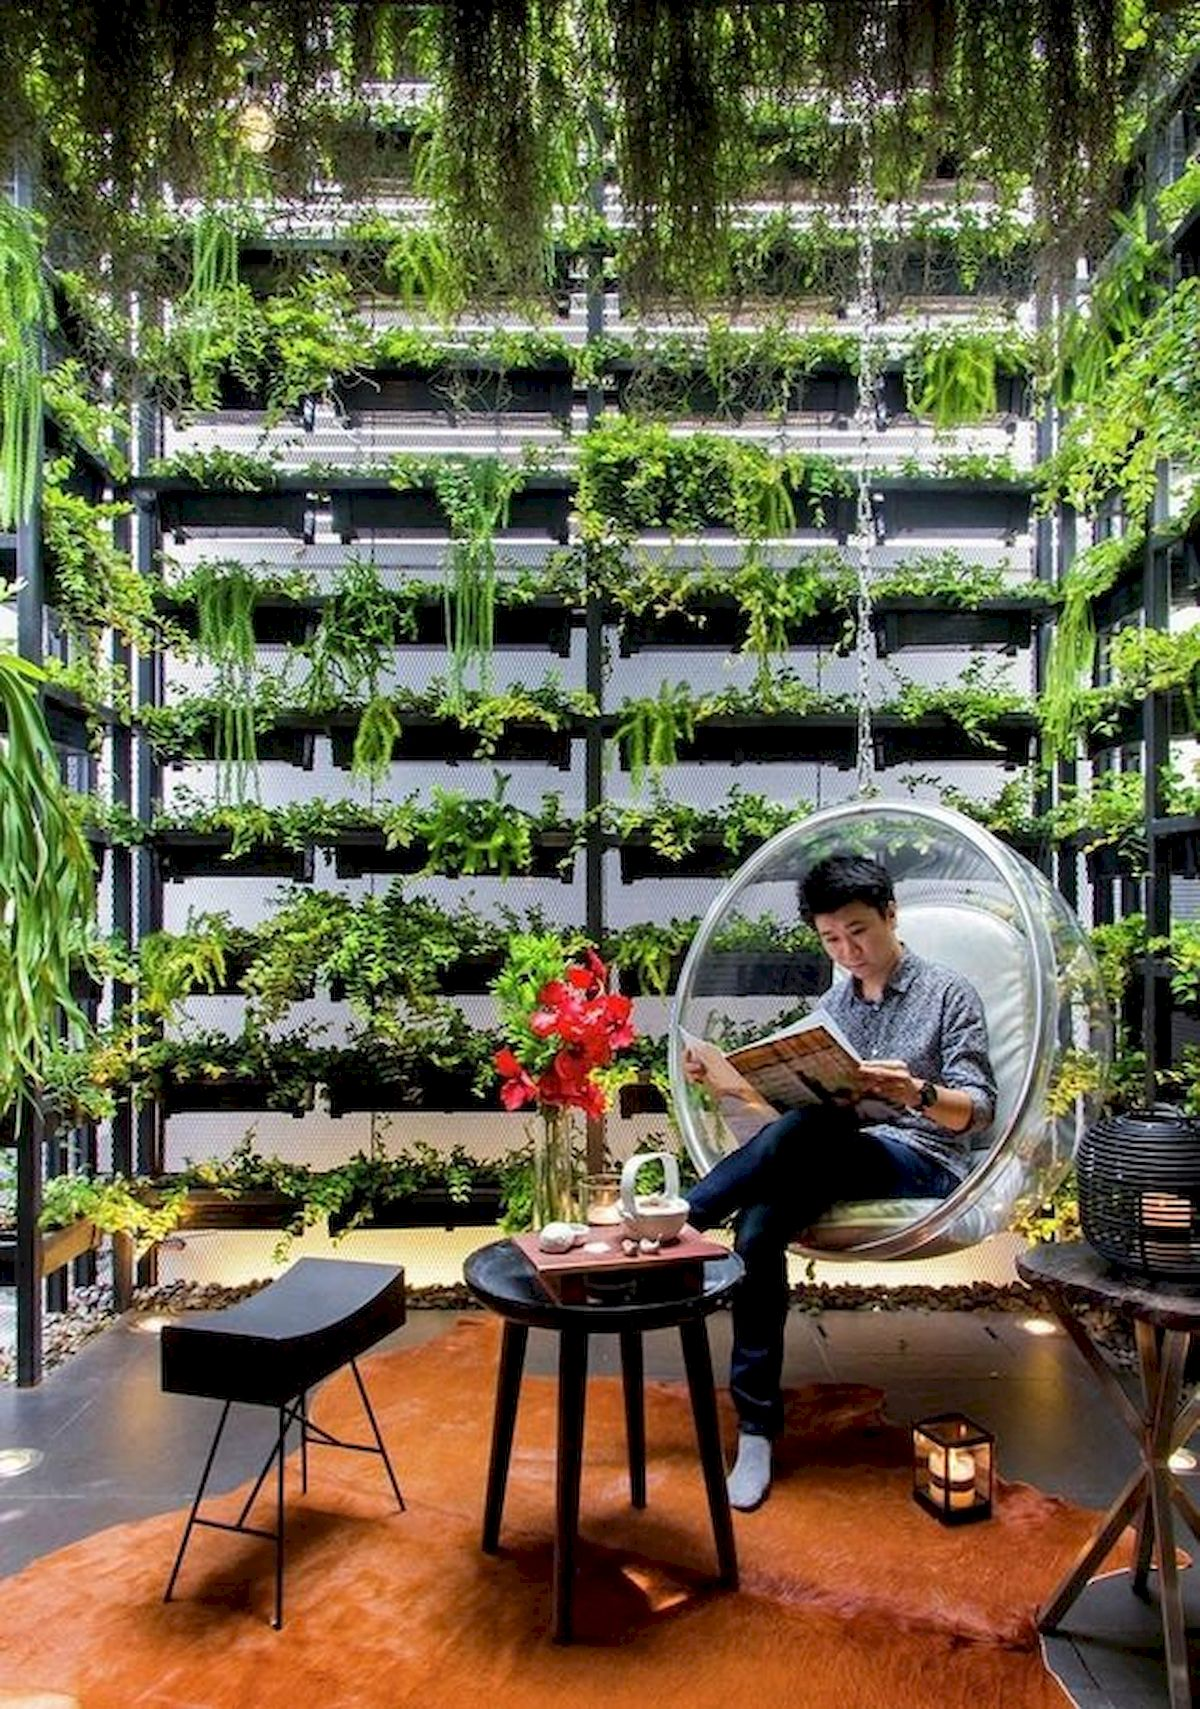 44 Fantastic Vertical Garden Ideas To Make Your Home Beautiful (9)